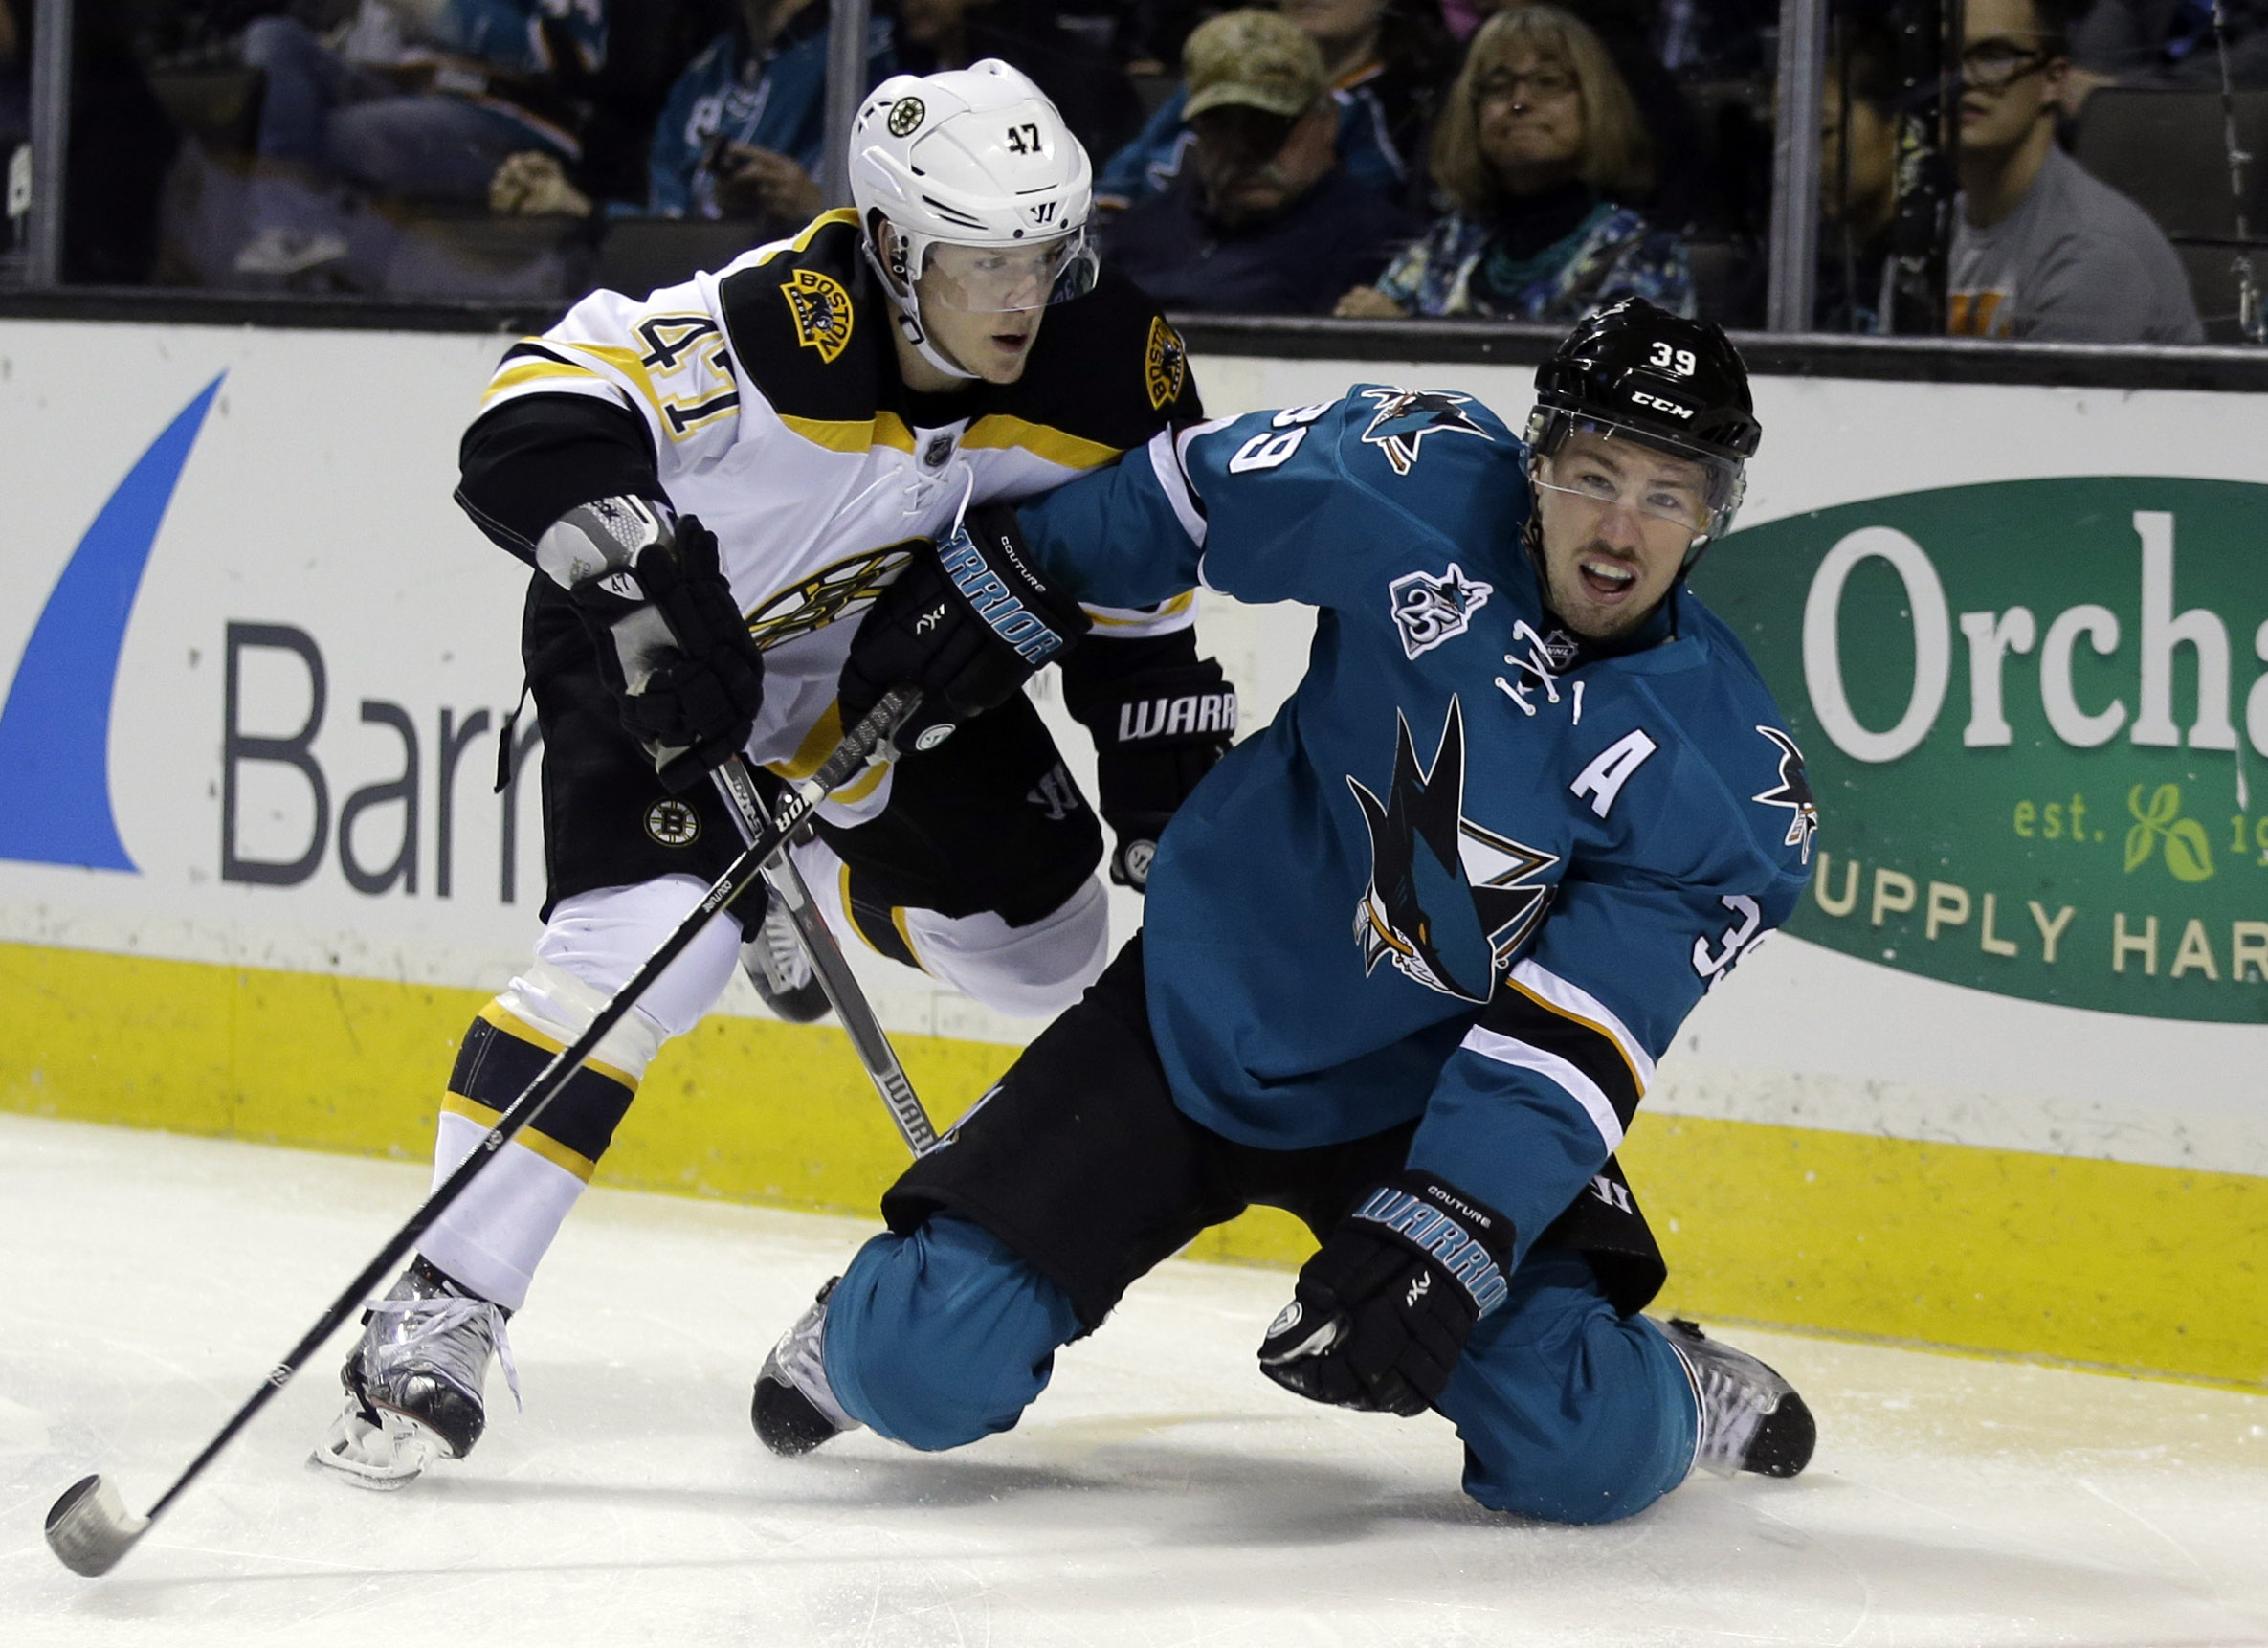 San Jose Sharks' Logan Couture (39) collides with Boston Bruins defenseman Torey Krug (47) during the first period of an NHL hockey game Tuesday, March 15, 2016, in San Jose, Calif. (AP Photo/Marcio Jose Sanchez)